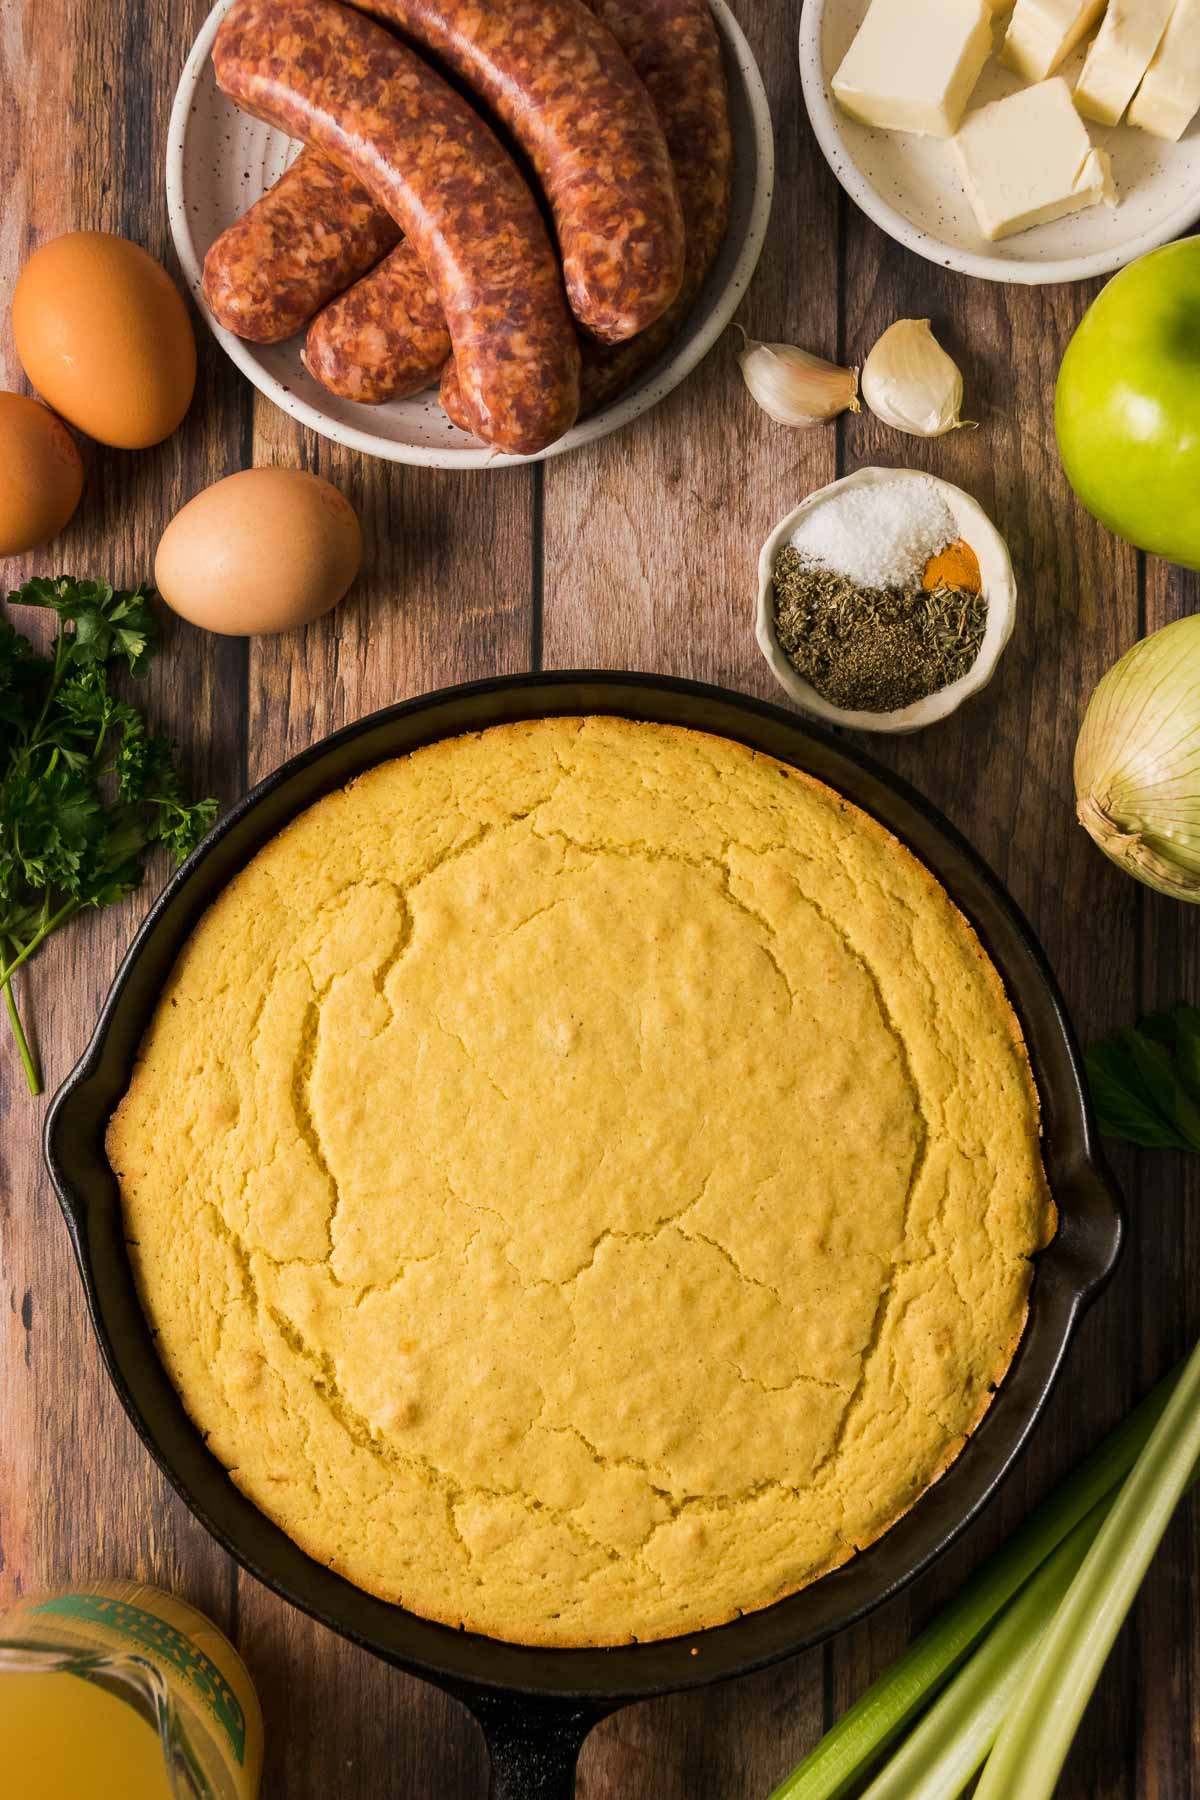 Cornbread in a cast iron skillet surrounded by bowls of seasonings, Italian sausage, eggs, apple, and butter.